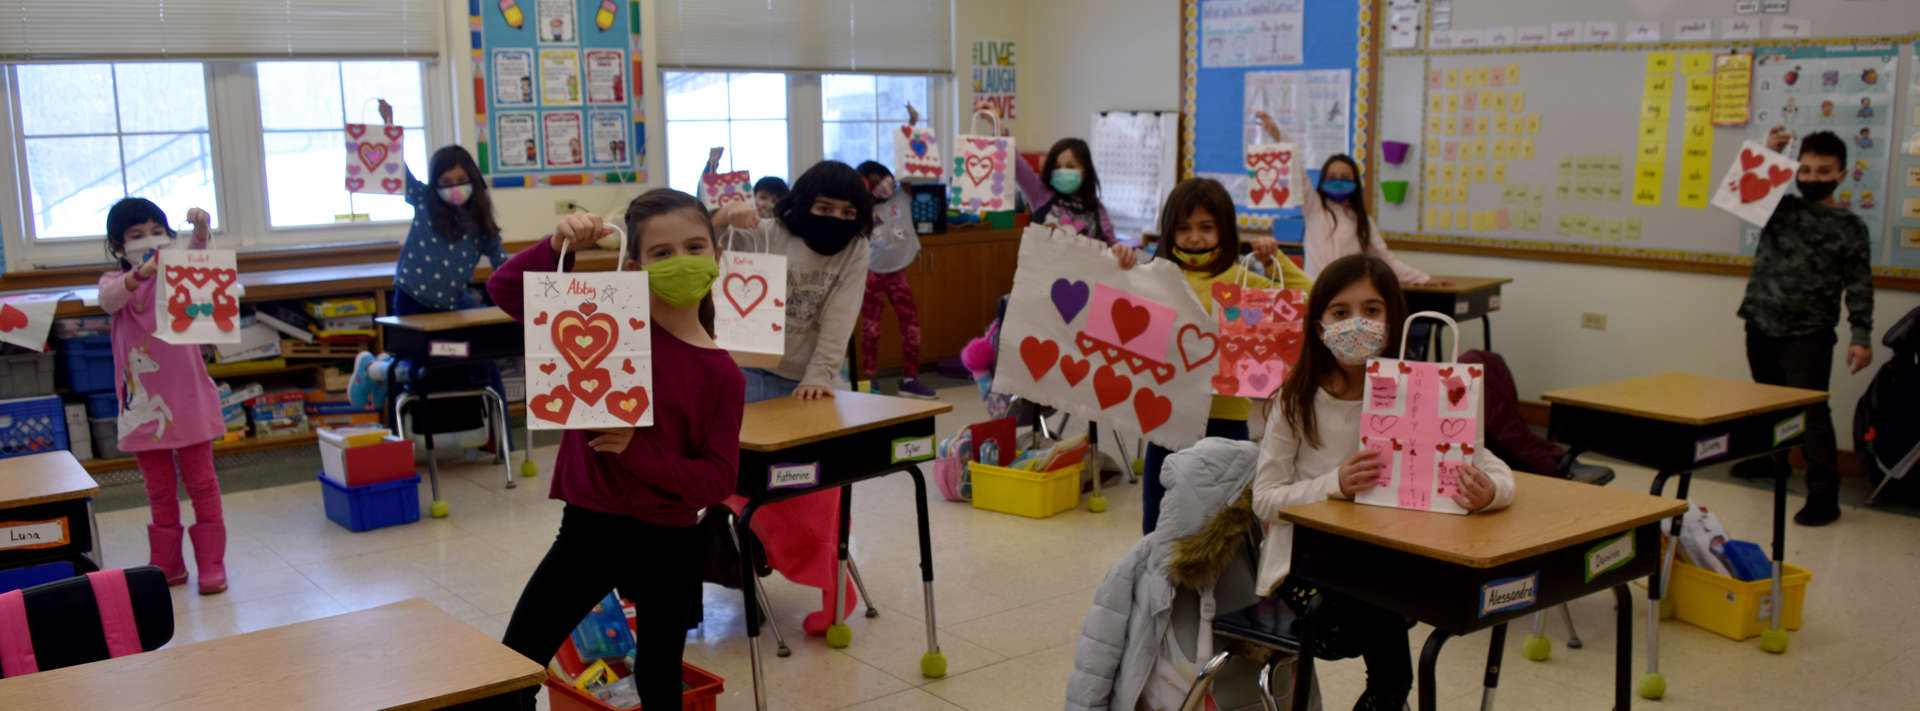 2nd grade students show off their valentine crafts